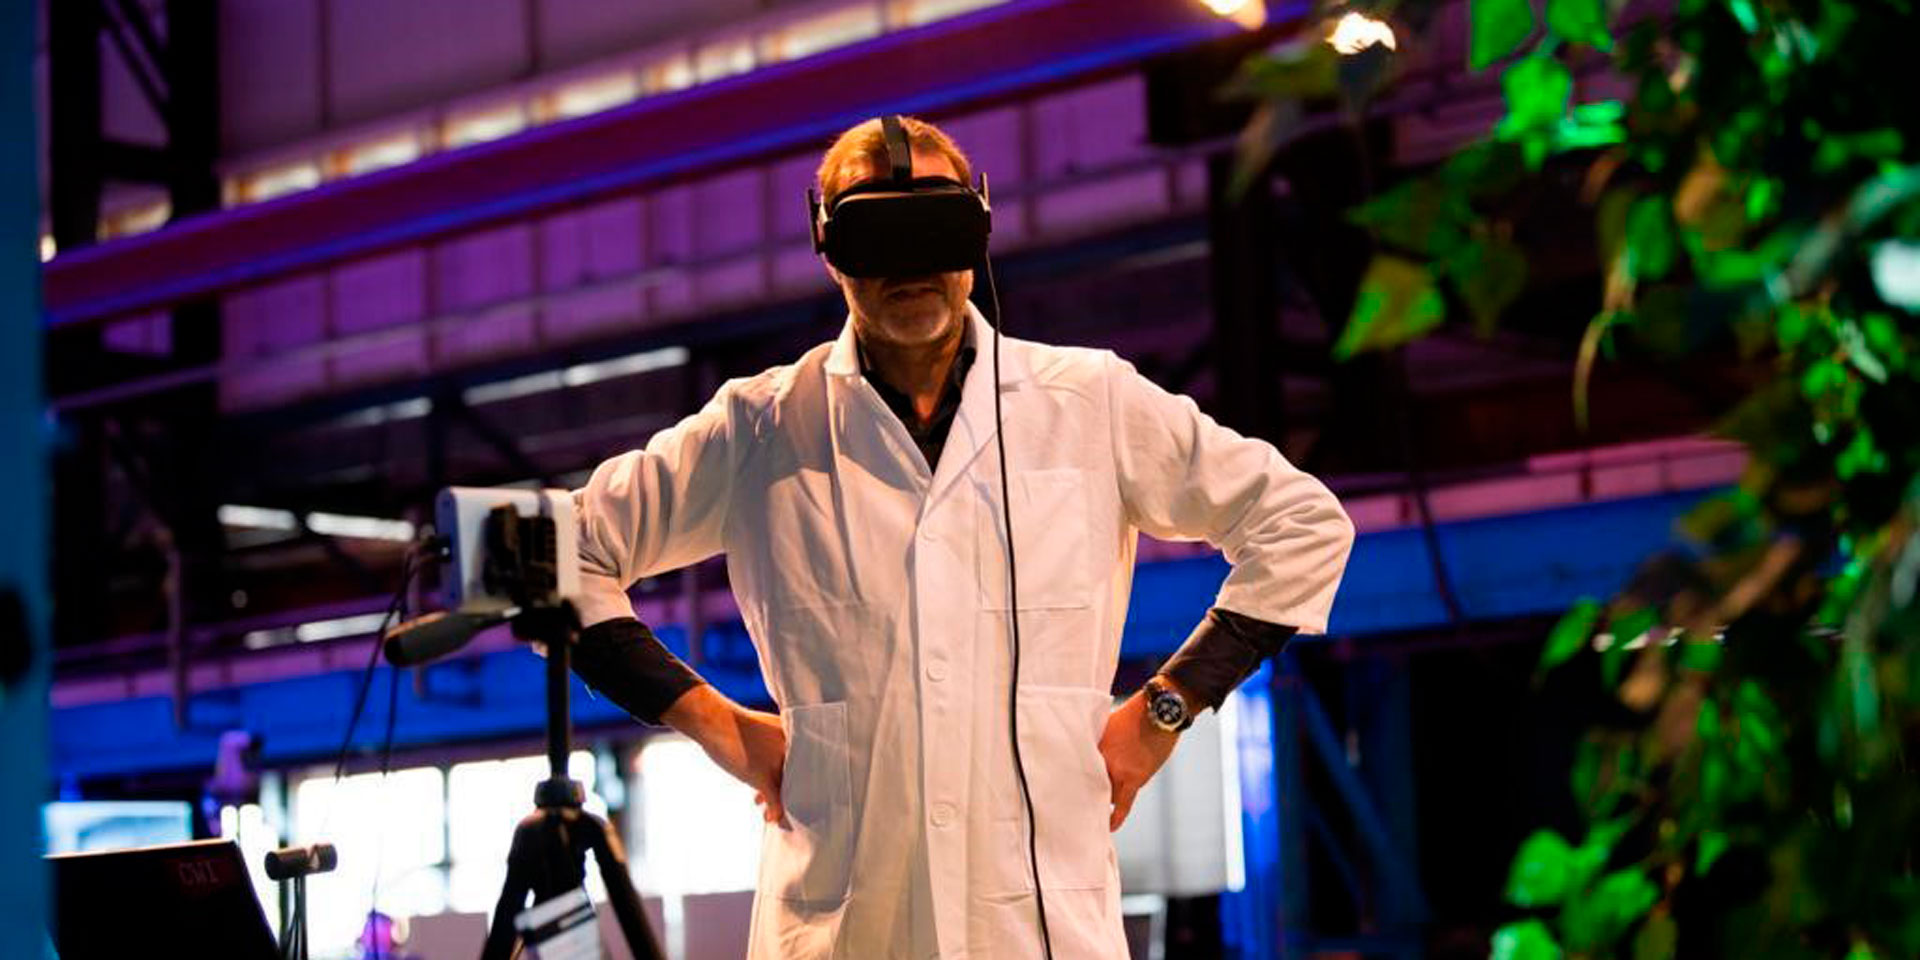 VRtogether presented the world's first volumetric video-conference on a public 5G network